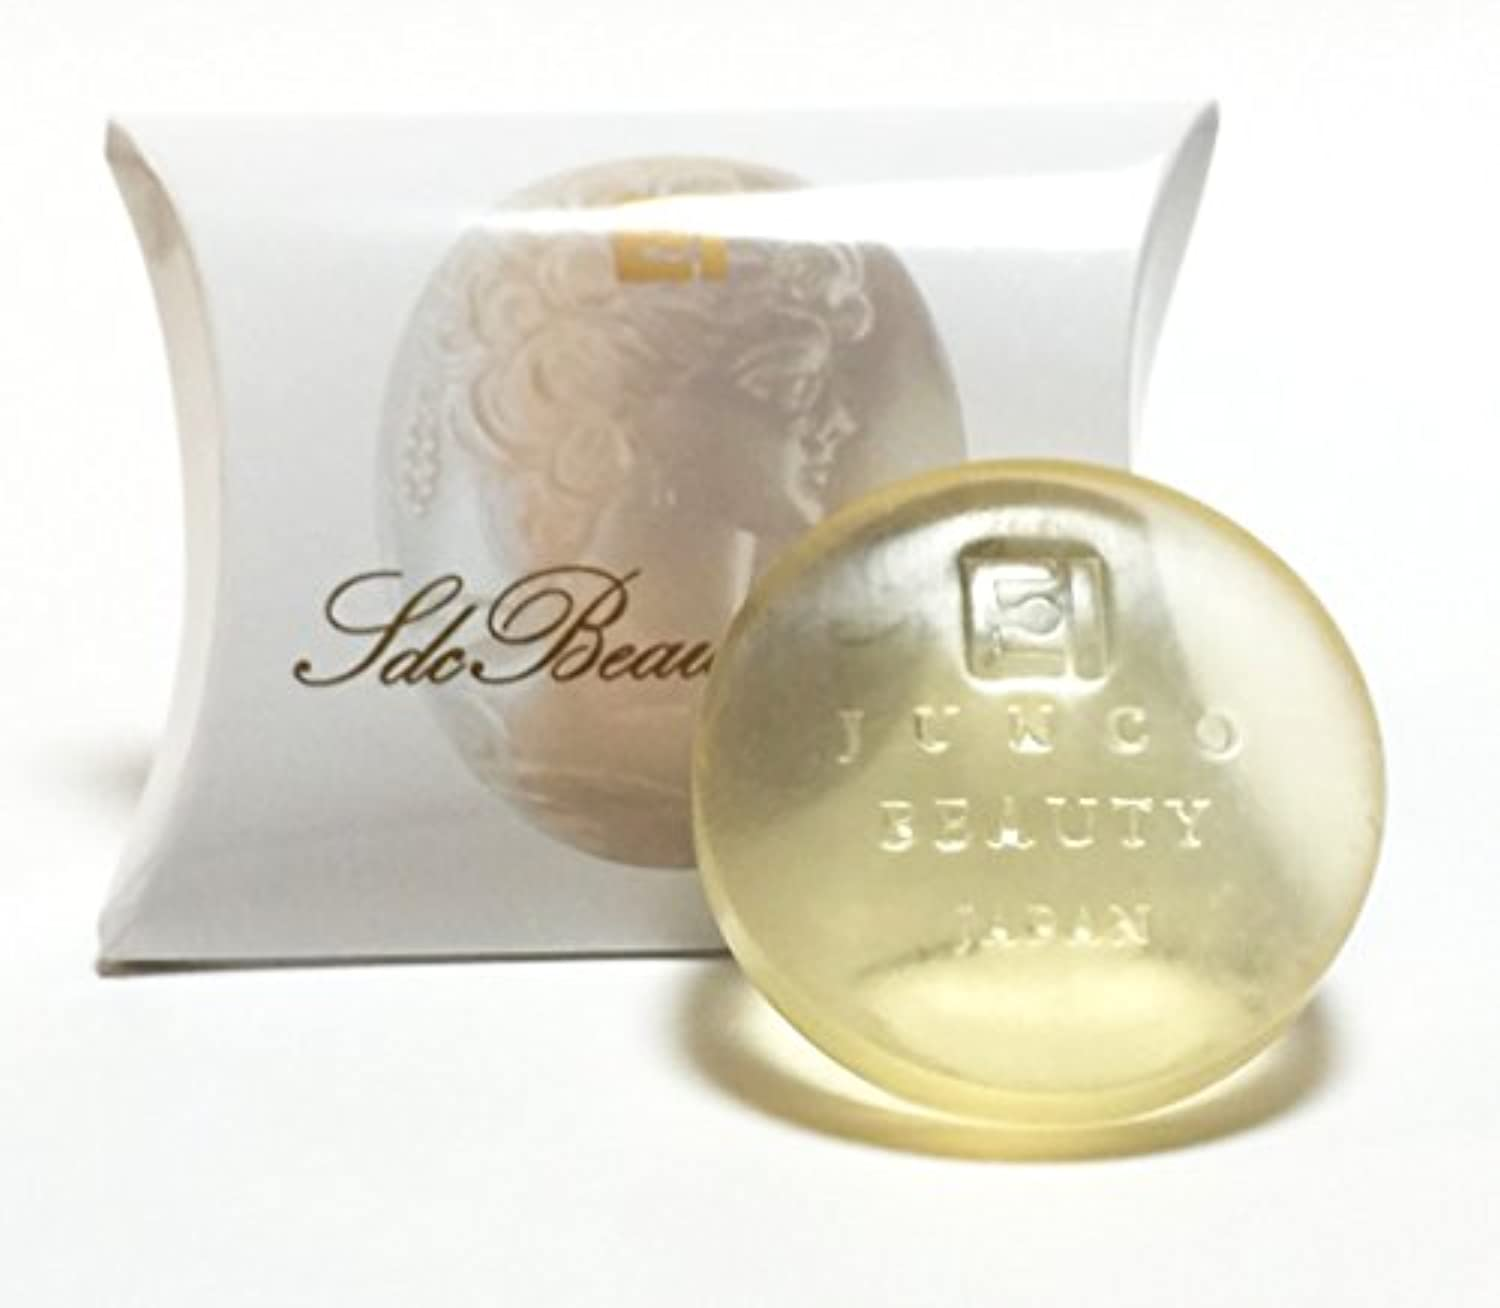 EI SDC BEAUTY SOAP(20g)